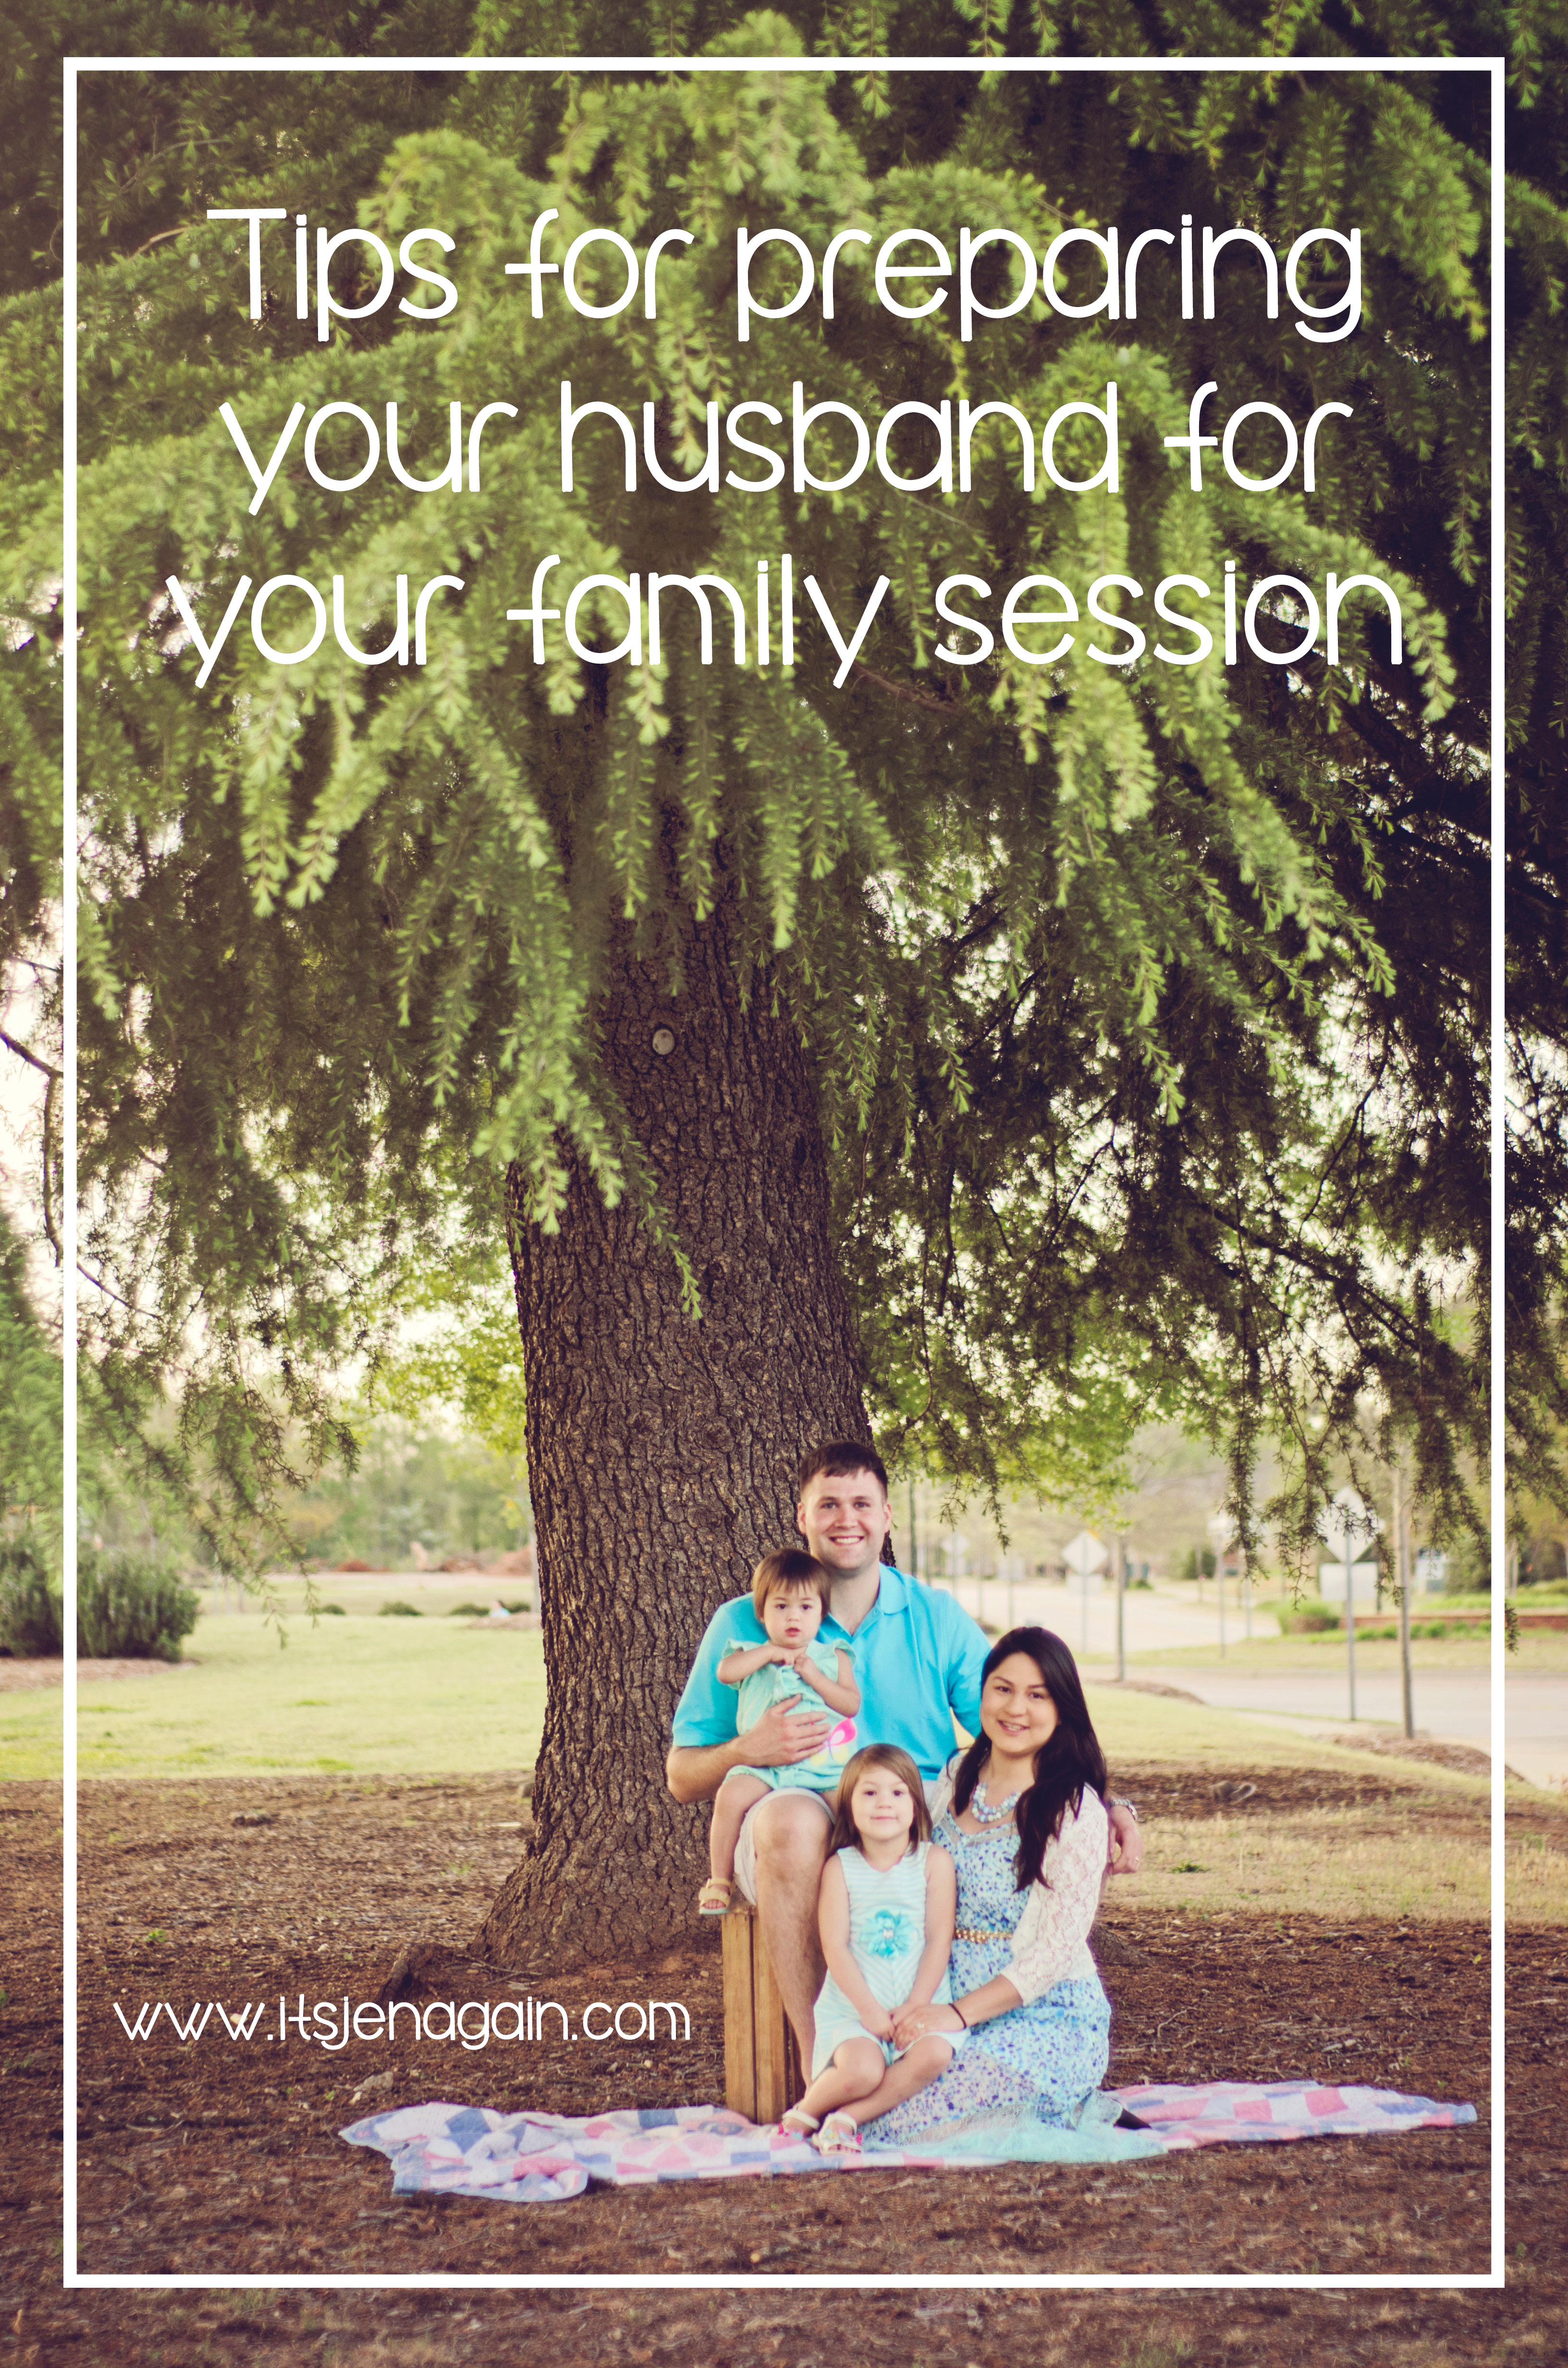 Tips For Preparing Your Husband For Your Family Session